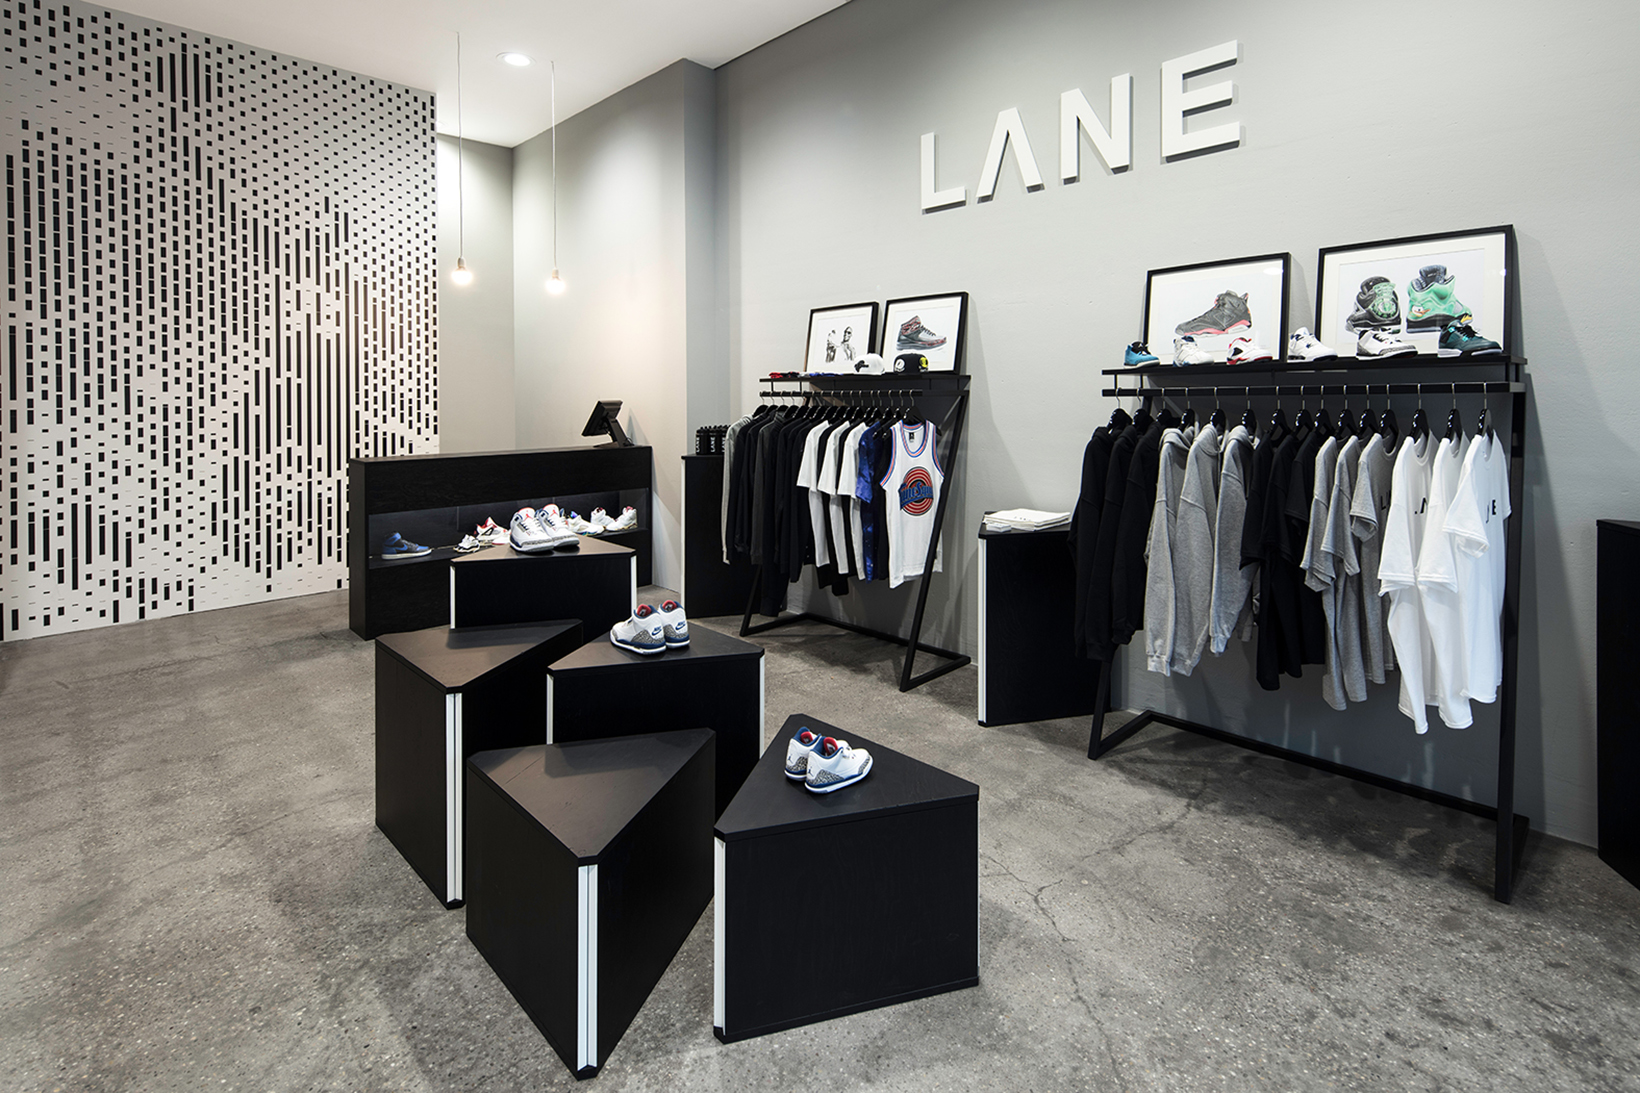 lane by suppa basketball concept store in stuttgart hypebeast. Black Bedroom Furniture Sets. Home Design Ideas